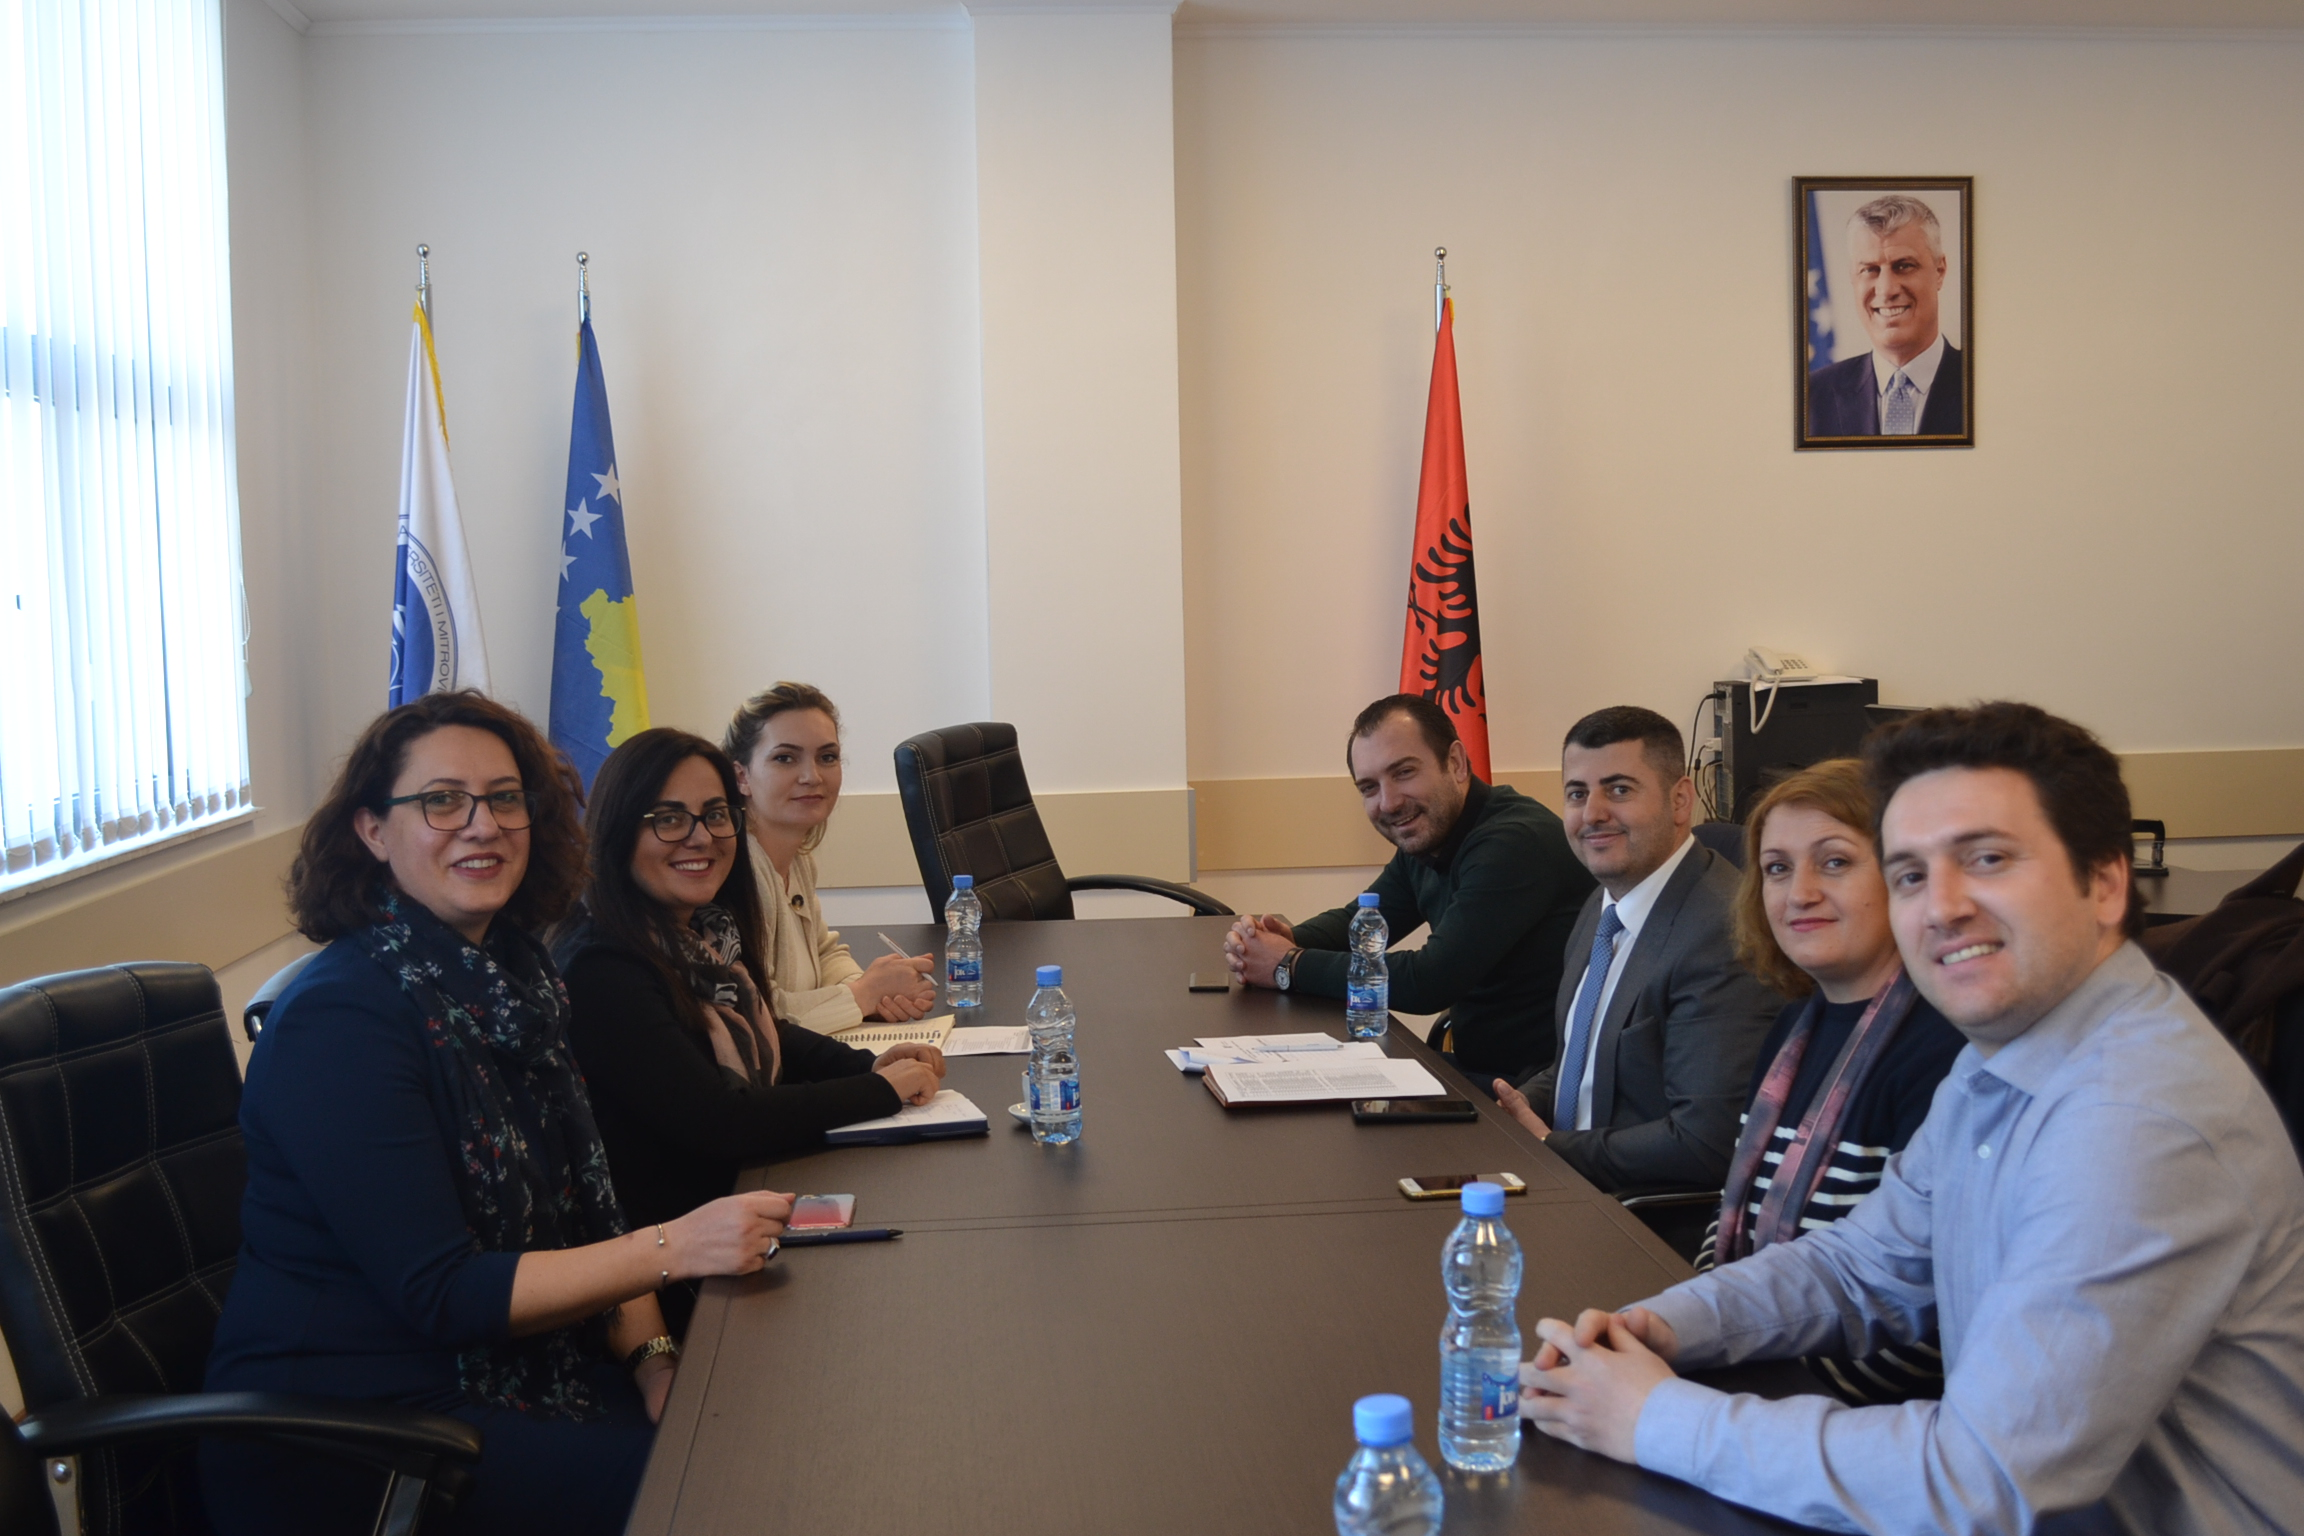 An Erasmus+ team conducted a monitoring visit to UMIB